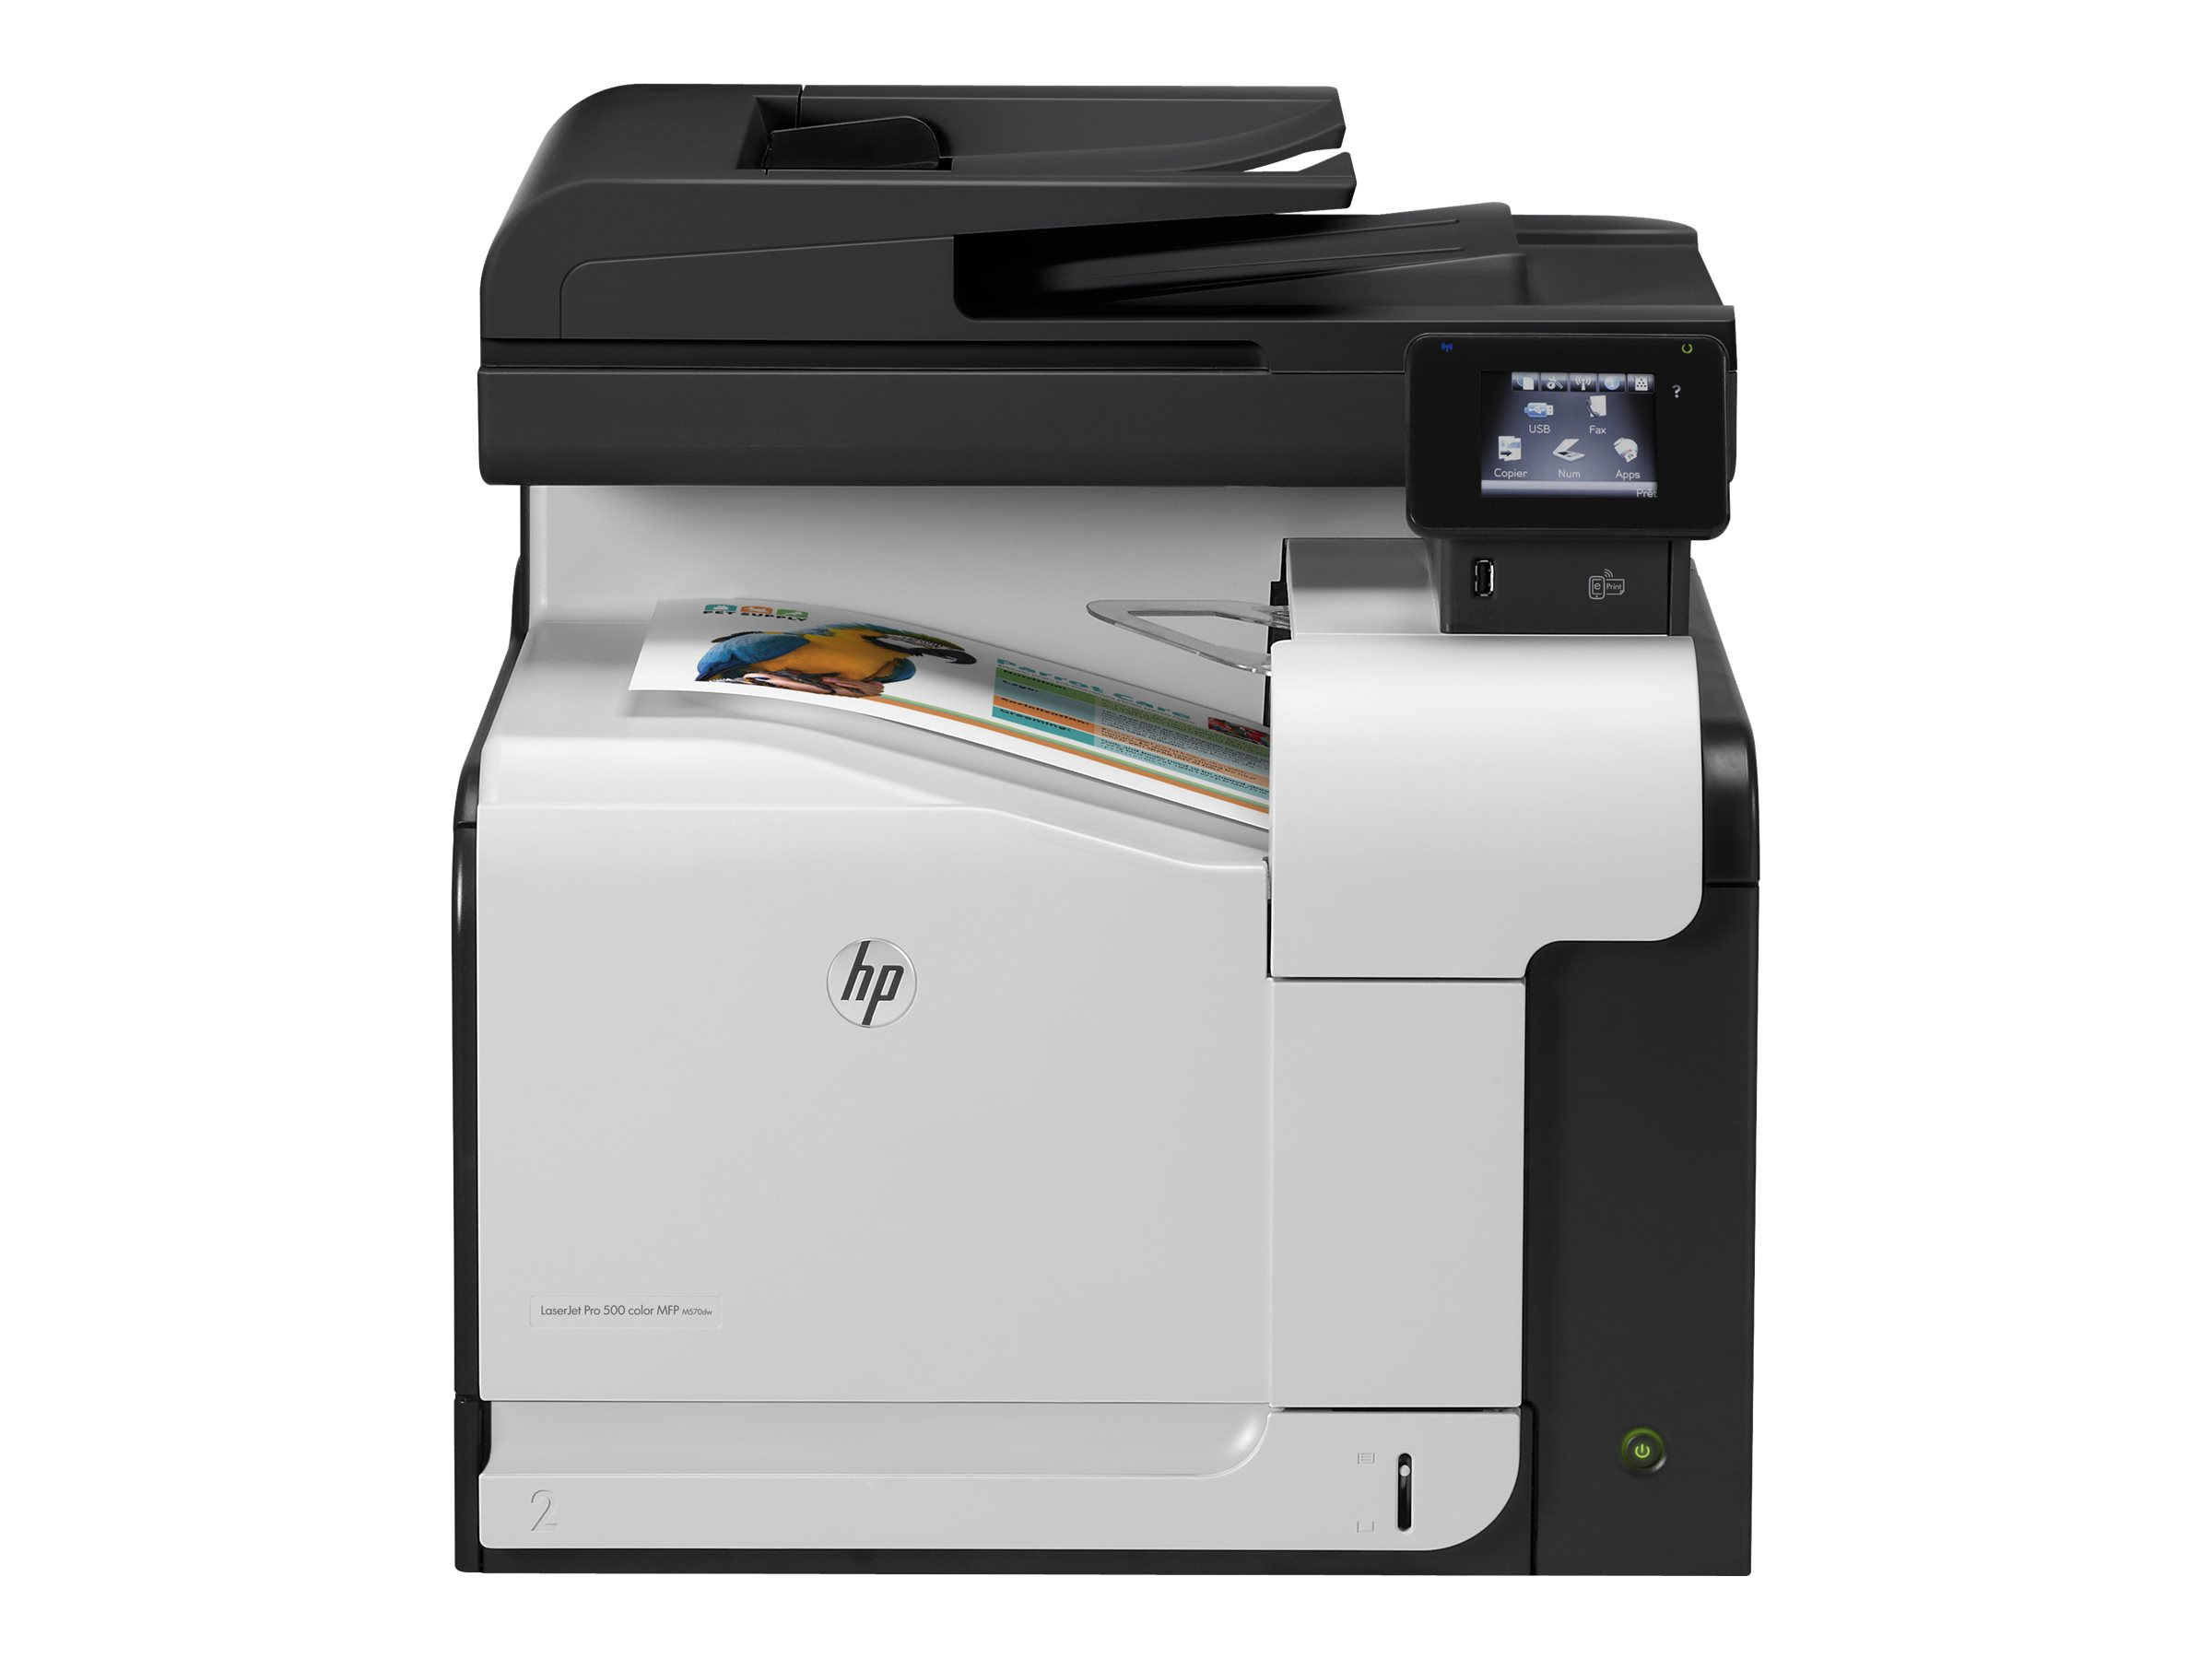 hp laserjet pro mfp m570dw imprimante multifonctions couleur imprimantes laser neuves. Black Bedroom Furniture Sets. Home Design Ideas